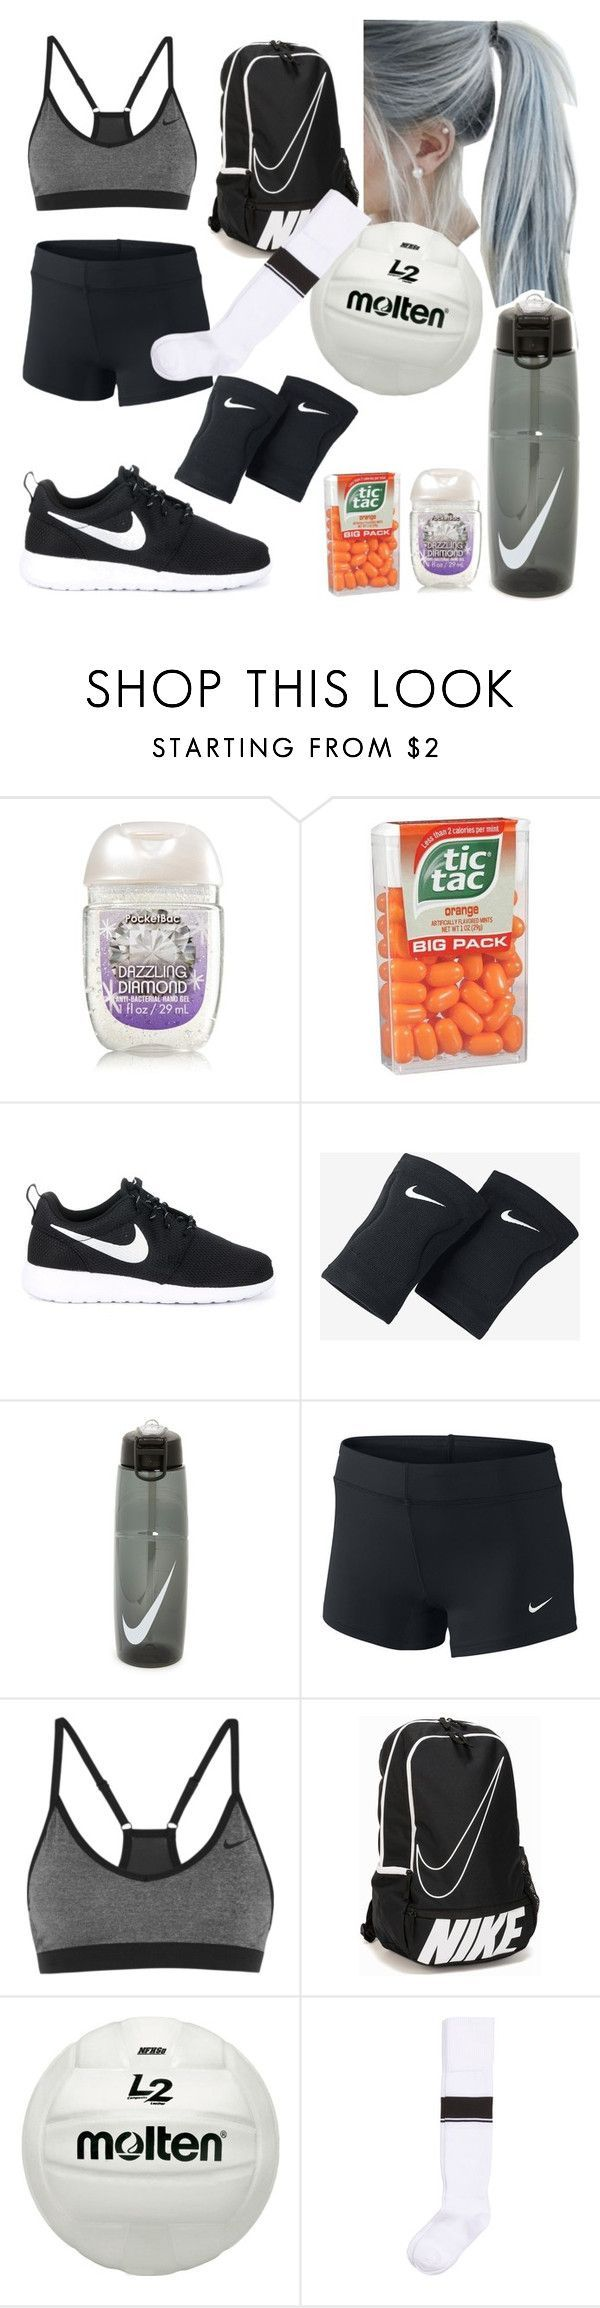 """Volleyball practice"" by scatteredstripes ❤ liked on Polyvore featuring NIKE"